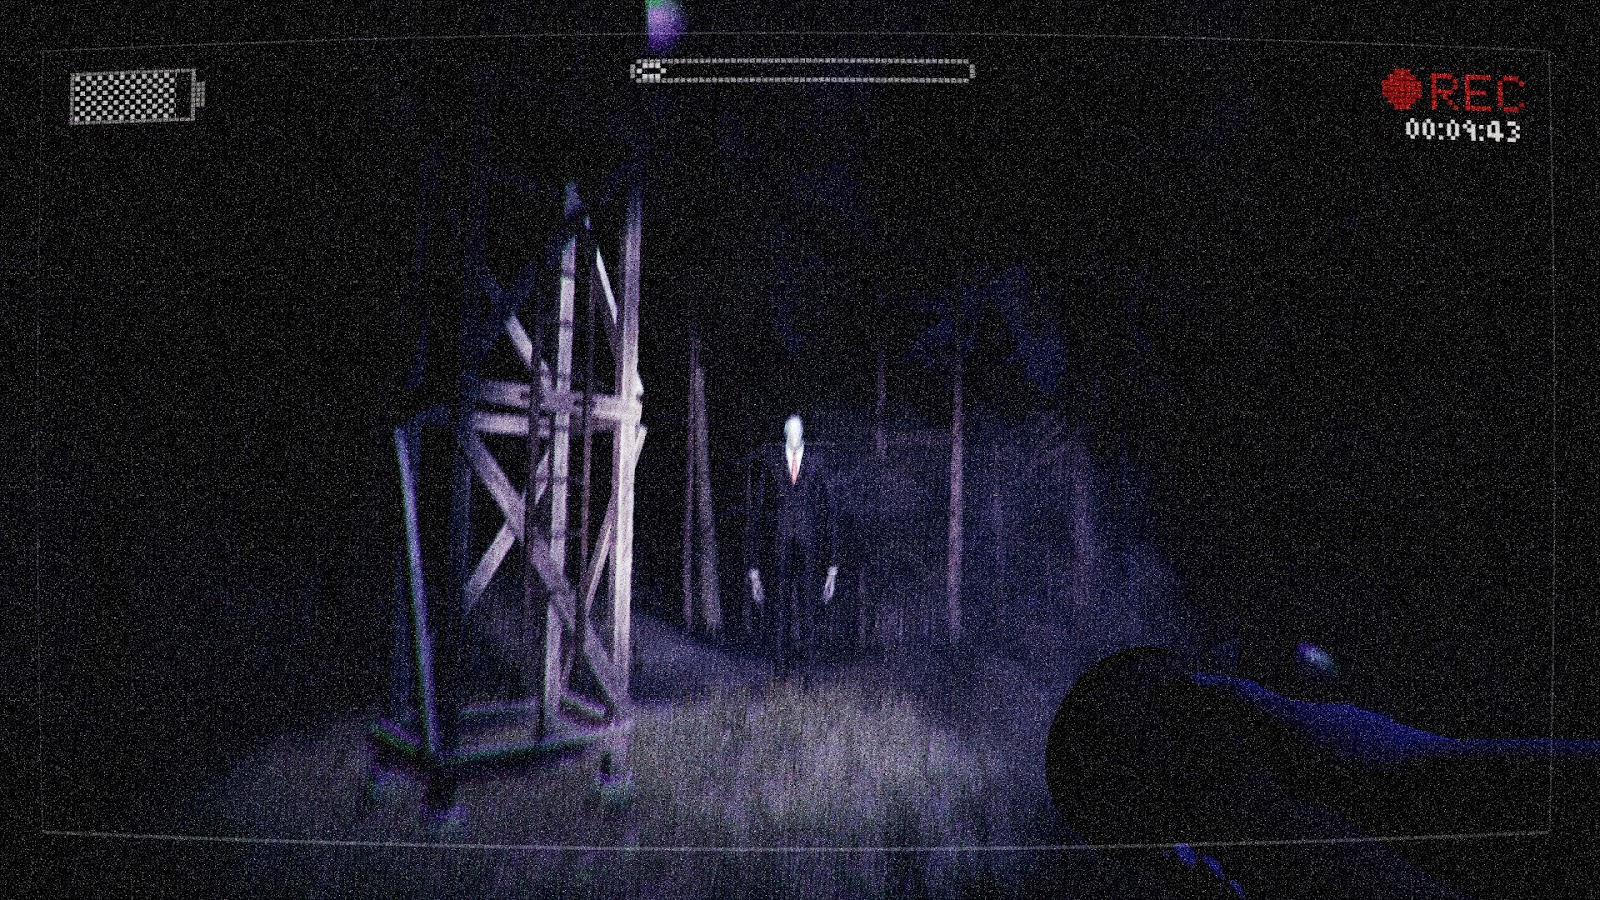 Download slender man 1. 03 apk for pc free android game | koplayer.